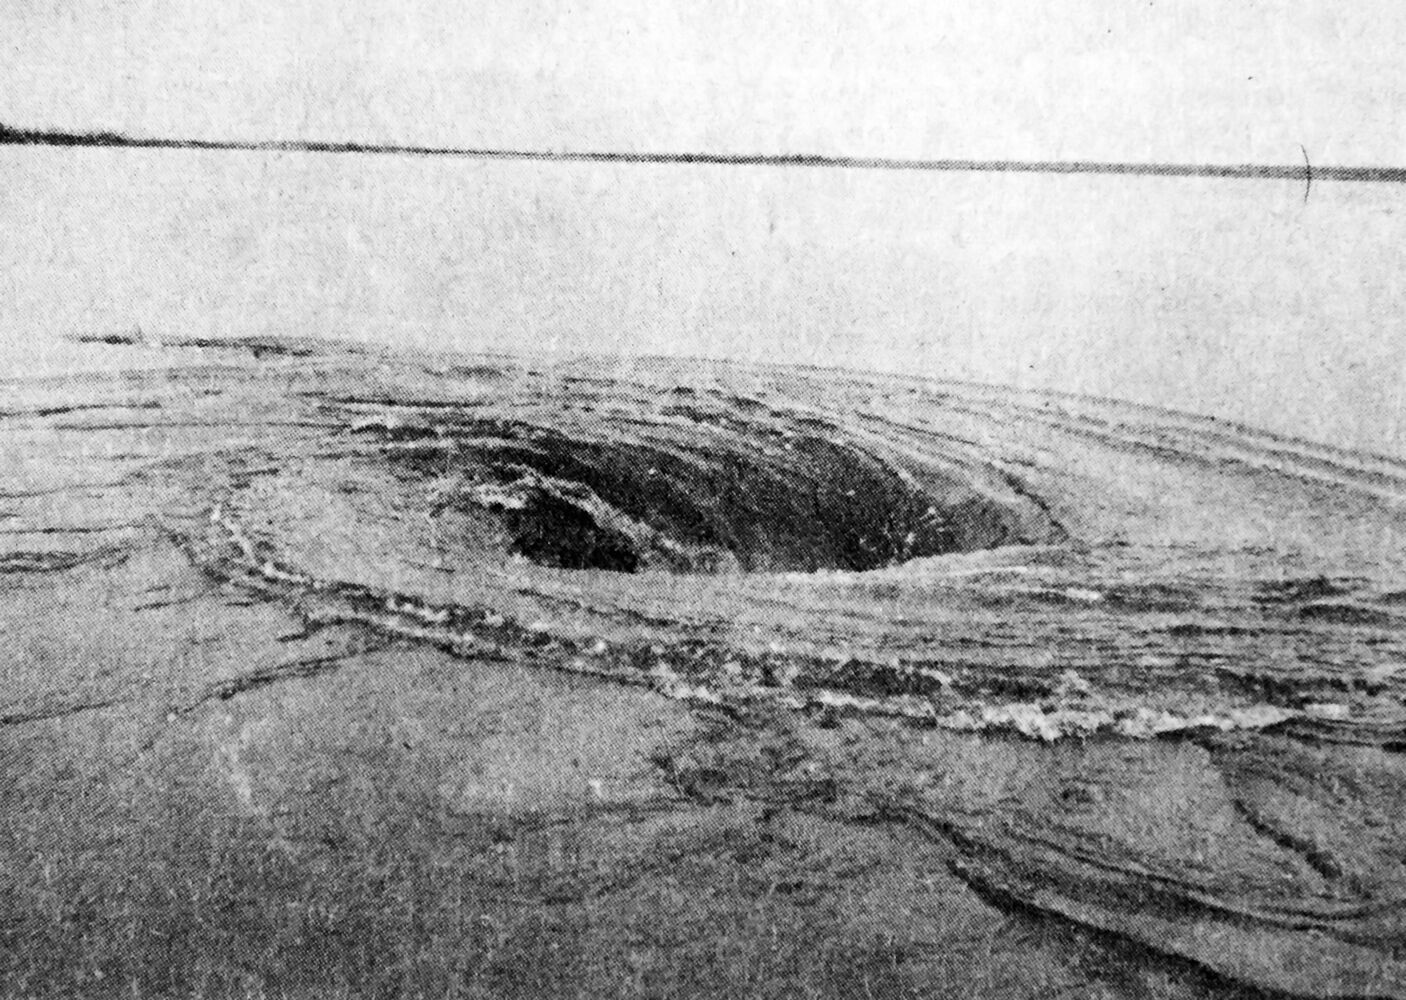 Water being sucked into a culvert forms a large whirlpool one mile west of Souris at Highway 2. (Brandon Sun archives, April 22, 1976)